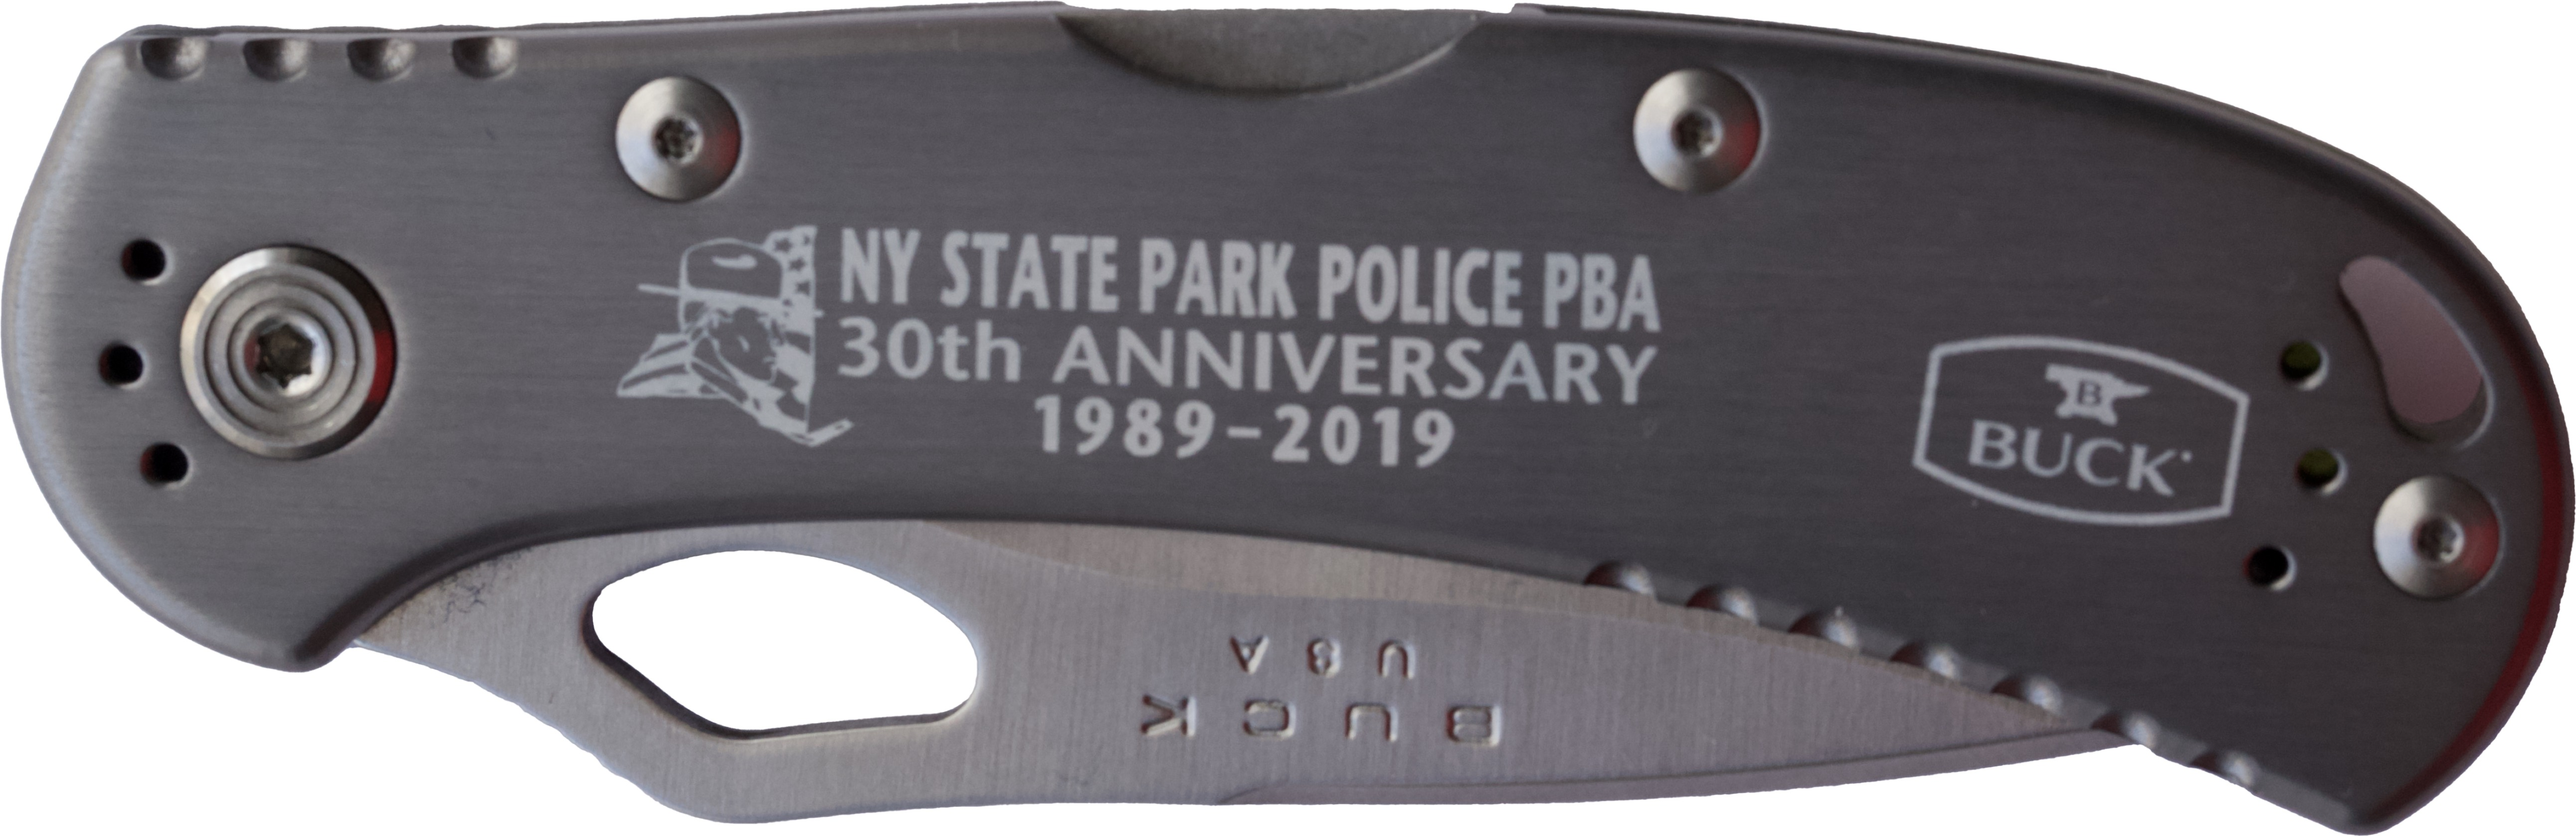 Pba knife.trimmed